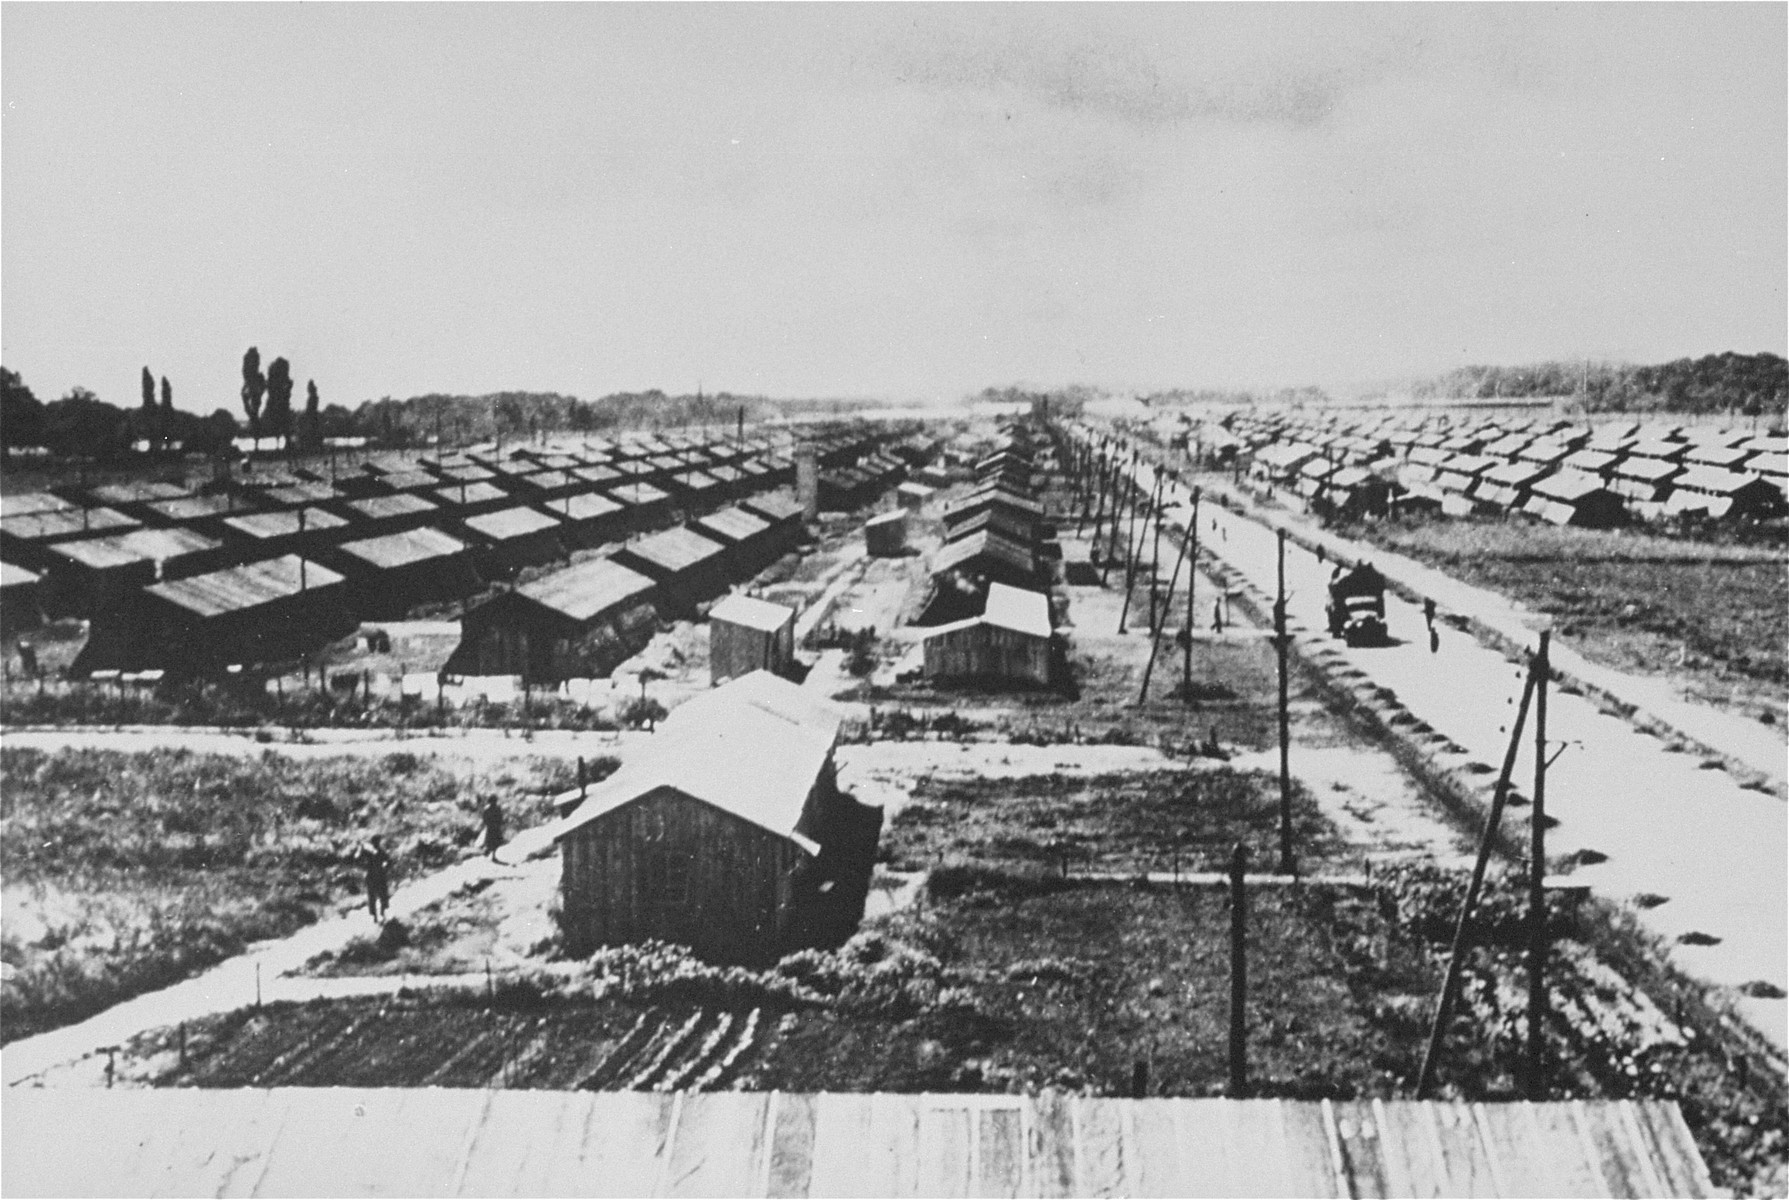 View of the Gurs transit camp from the camp water tower.